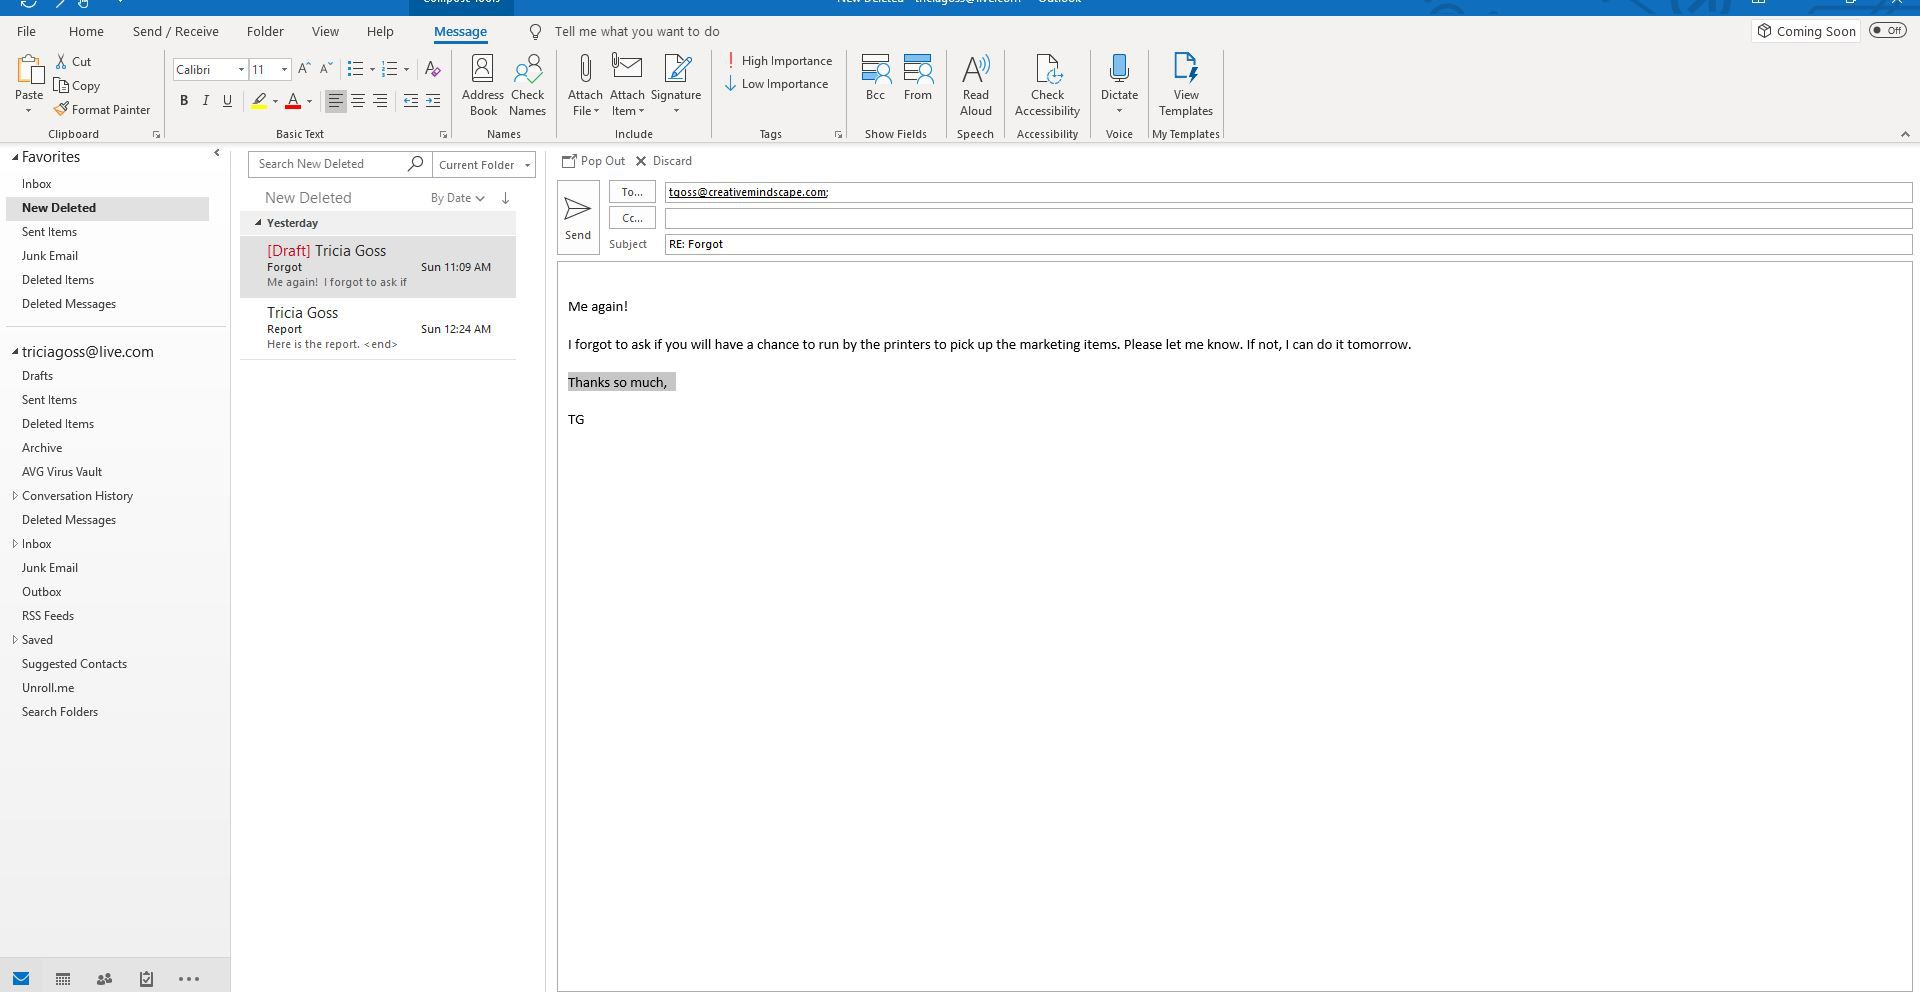 Highlight Text With Marker Pen Background Color in Outlook